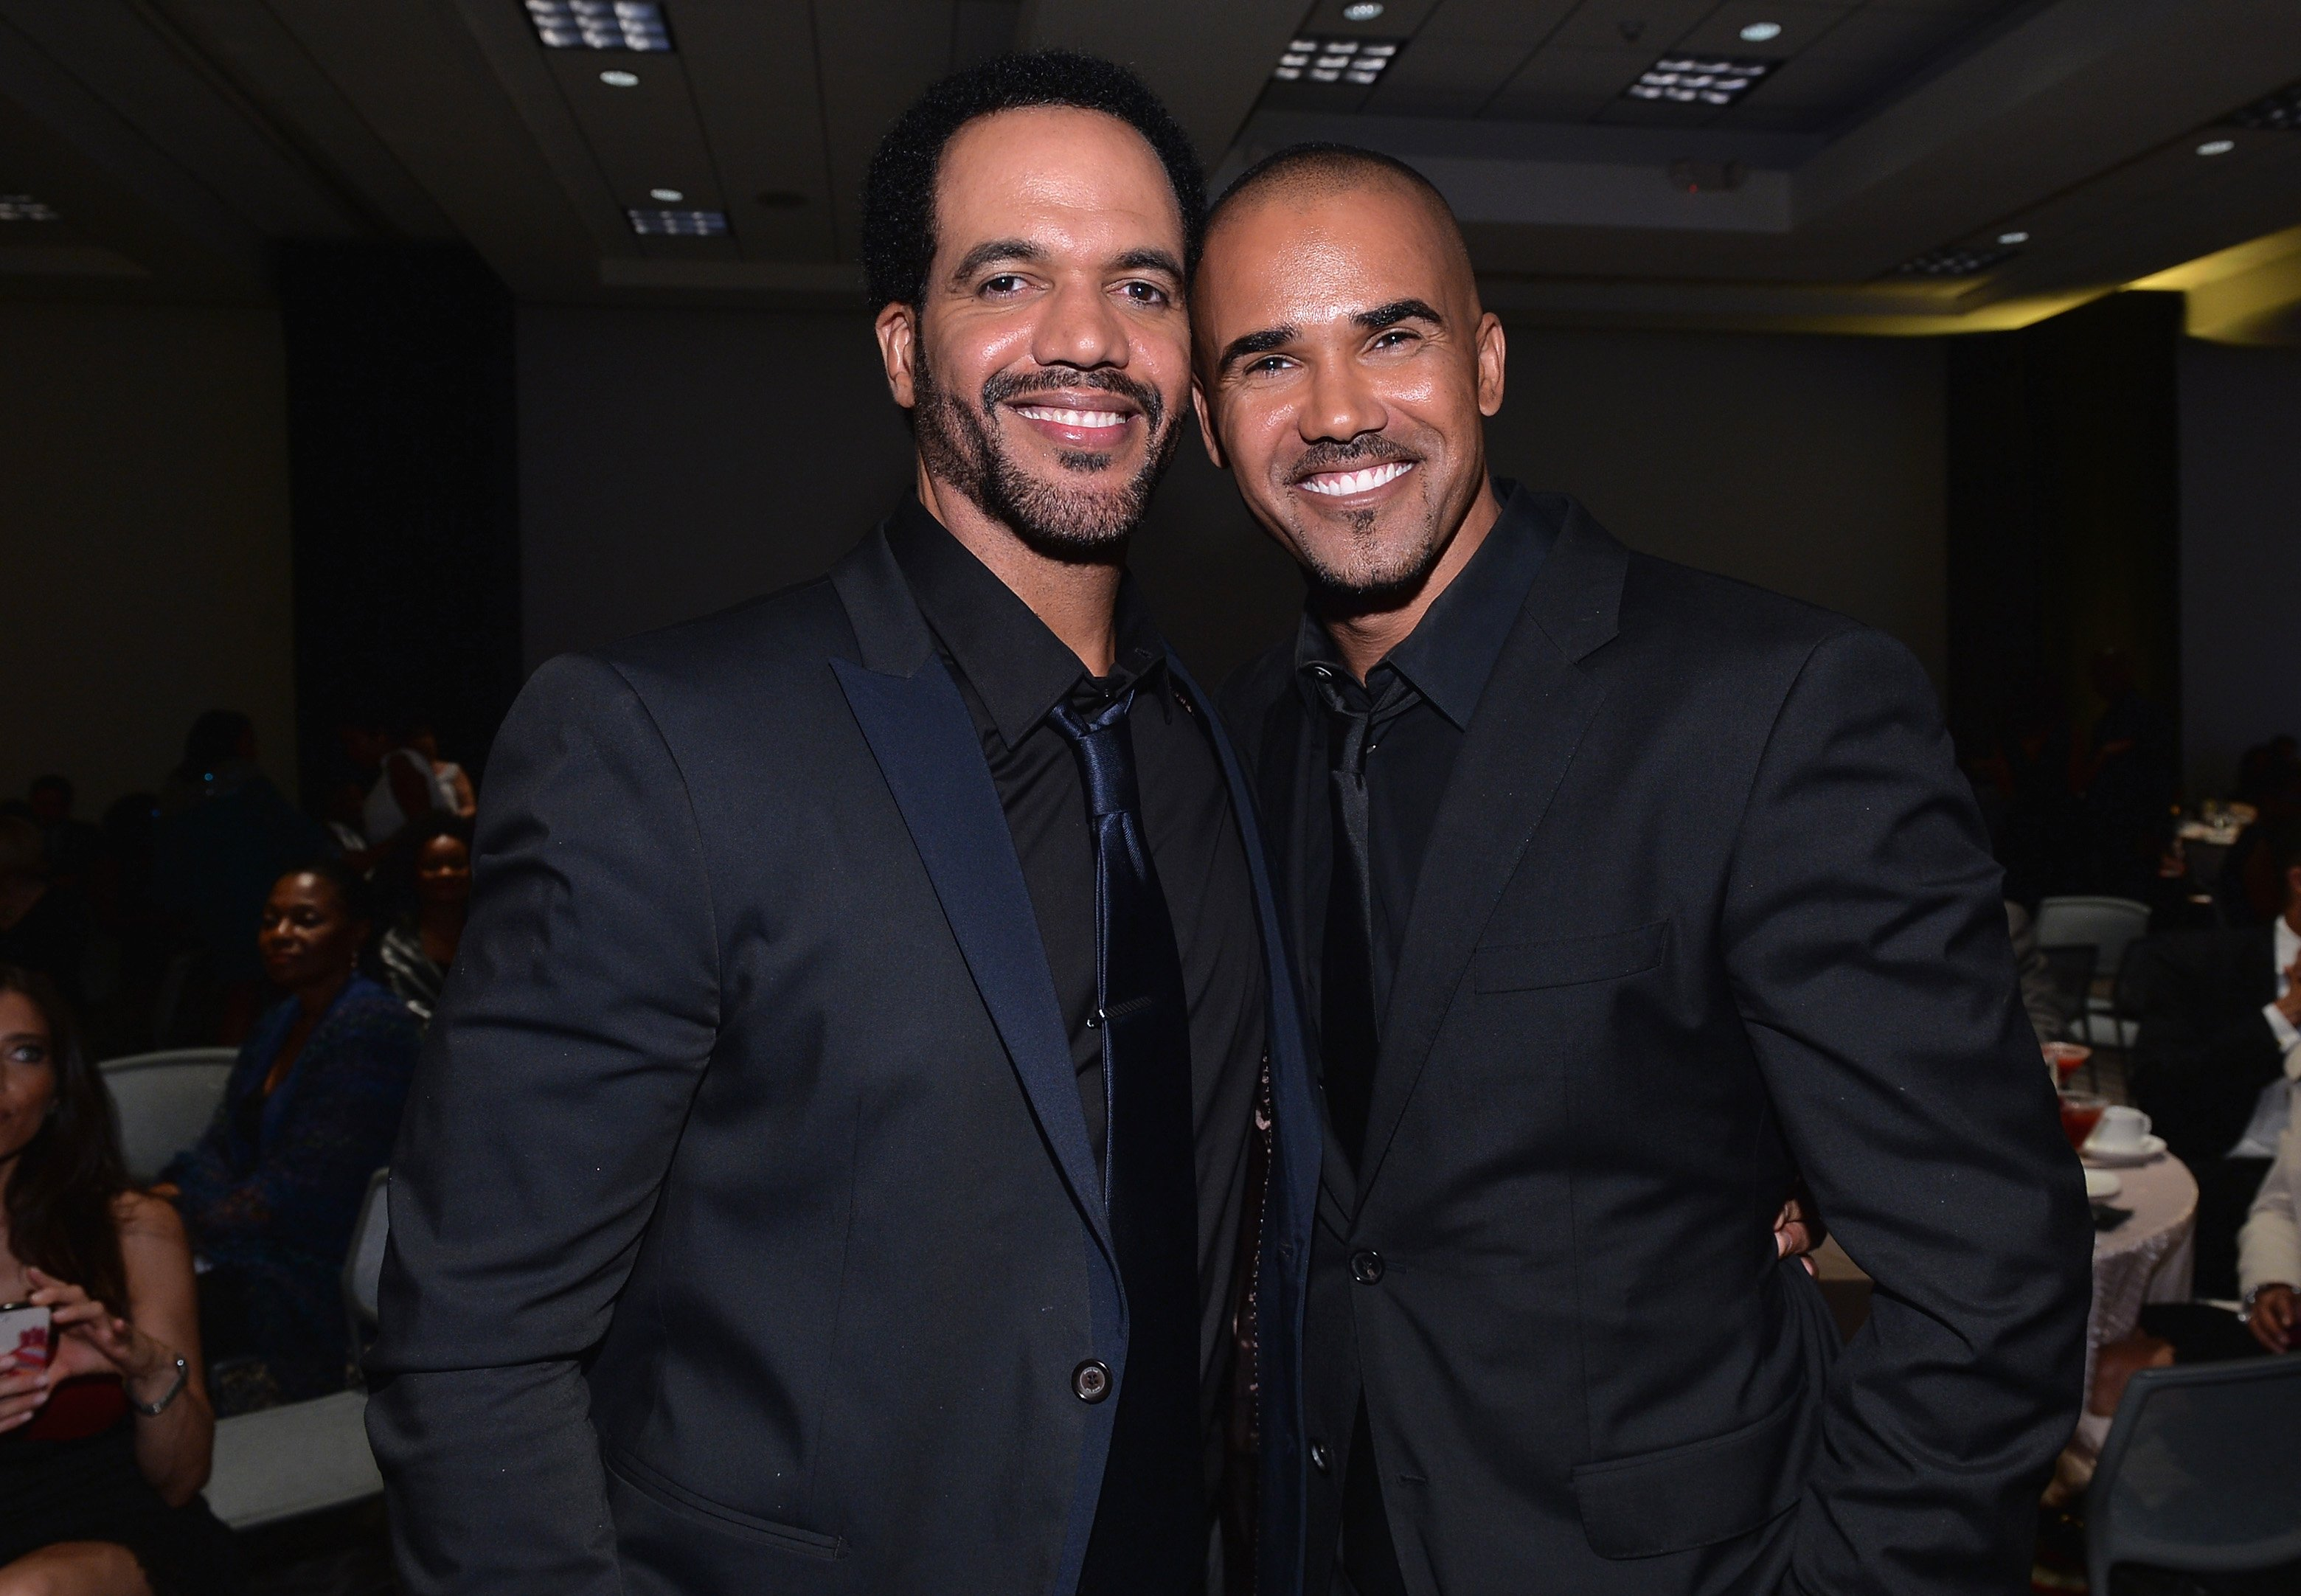 Shemar Moore and the late Kristoff St. John | Photo: Getty Images